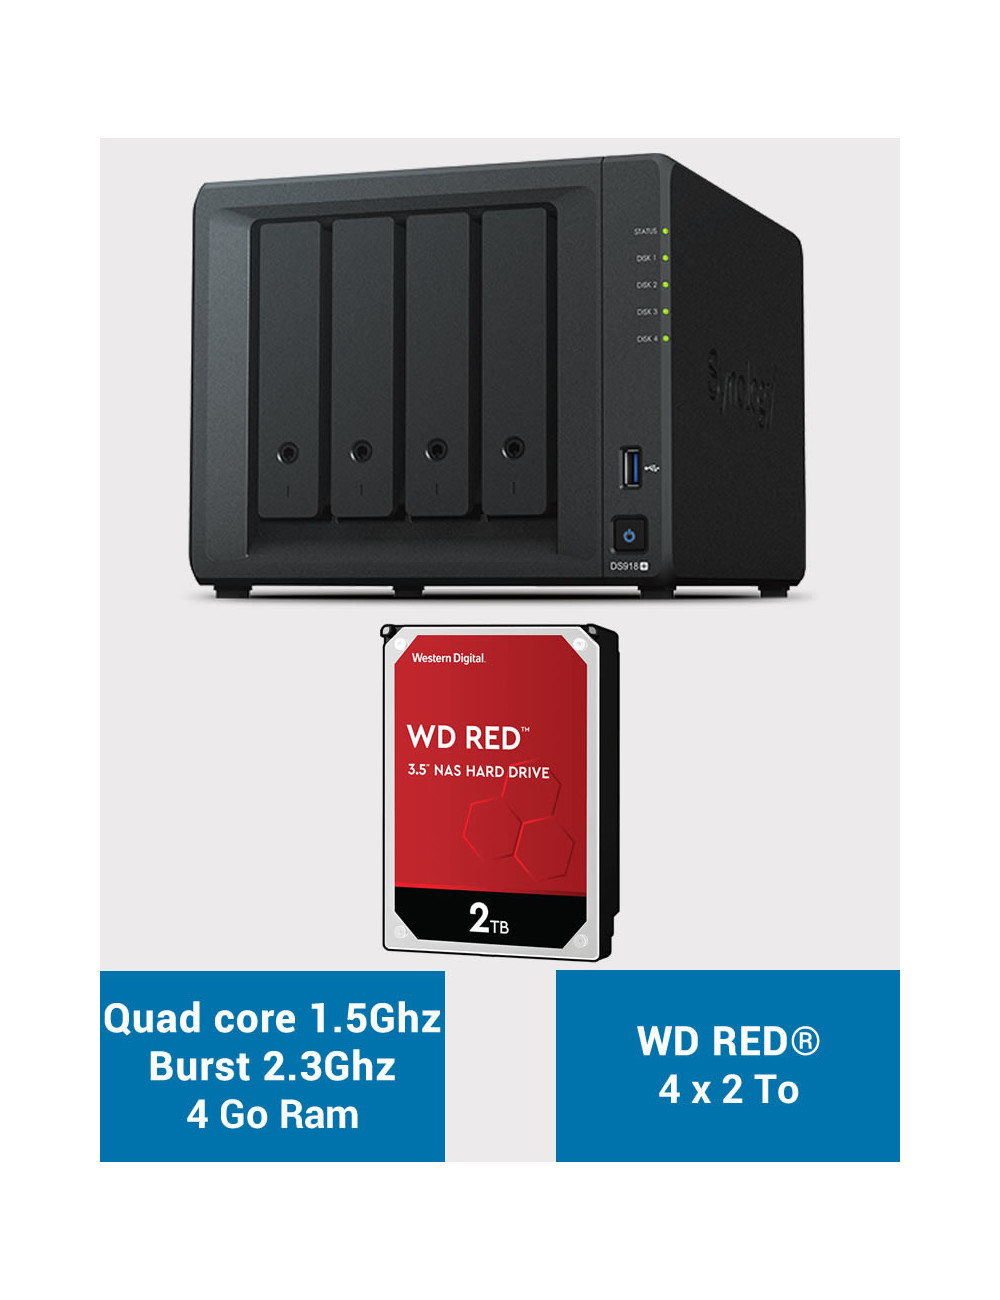 Synology DS918+ Serveur NAS WD RED 8To (4x2To)